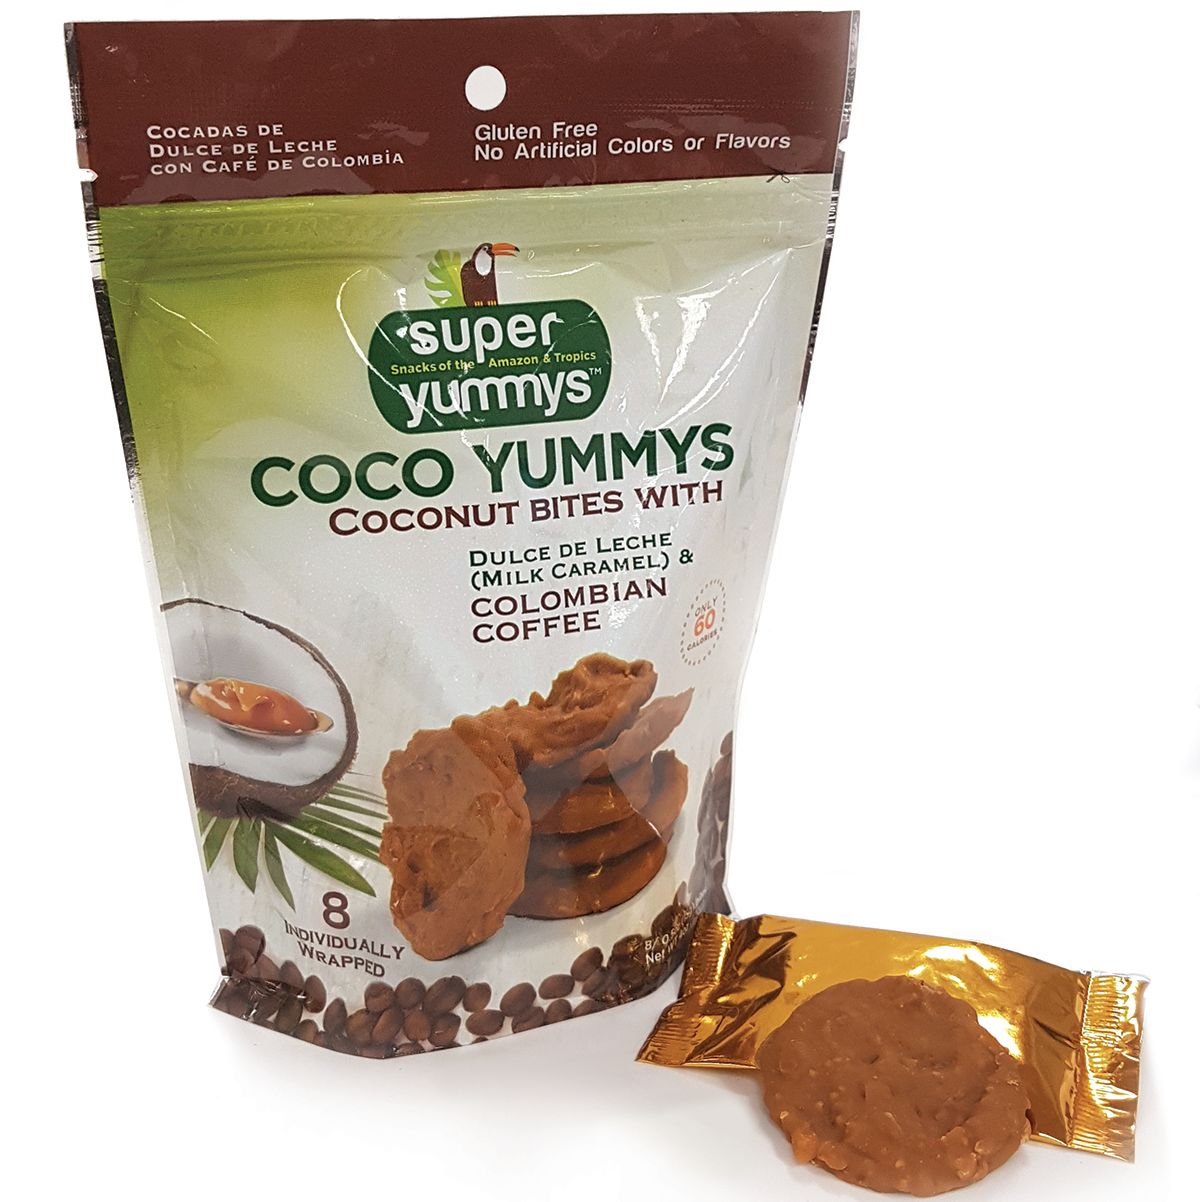 Coco yummys p0yyby